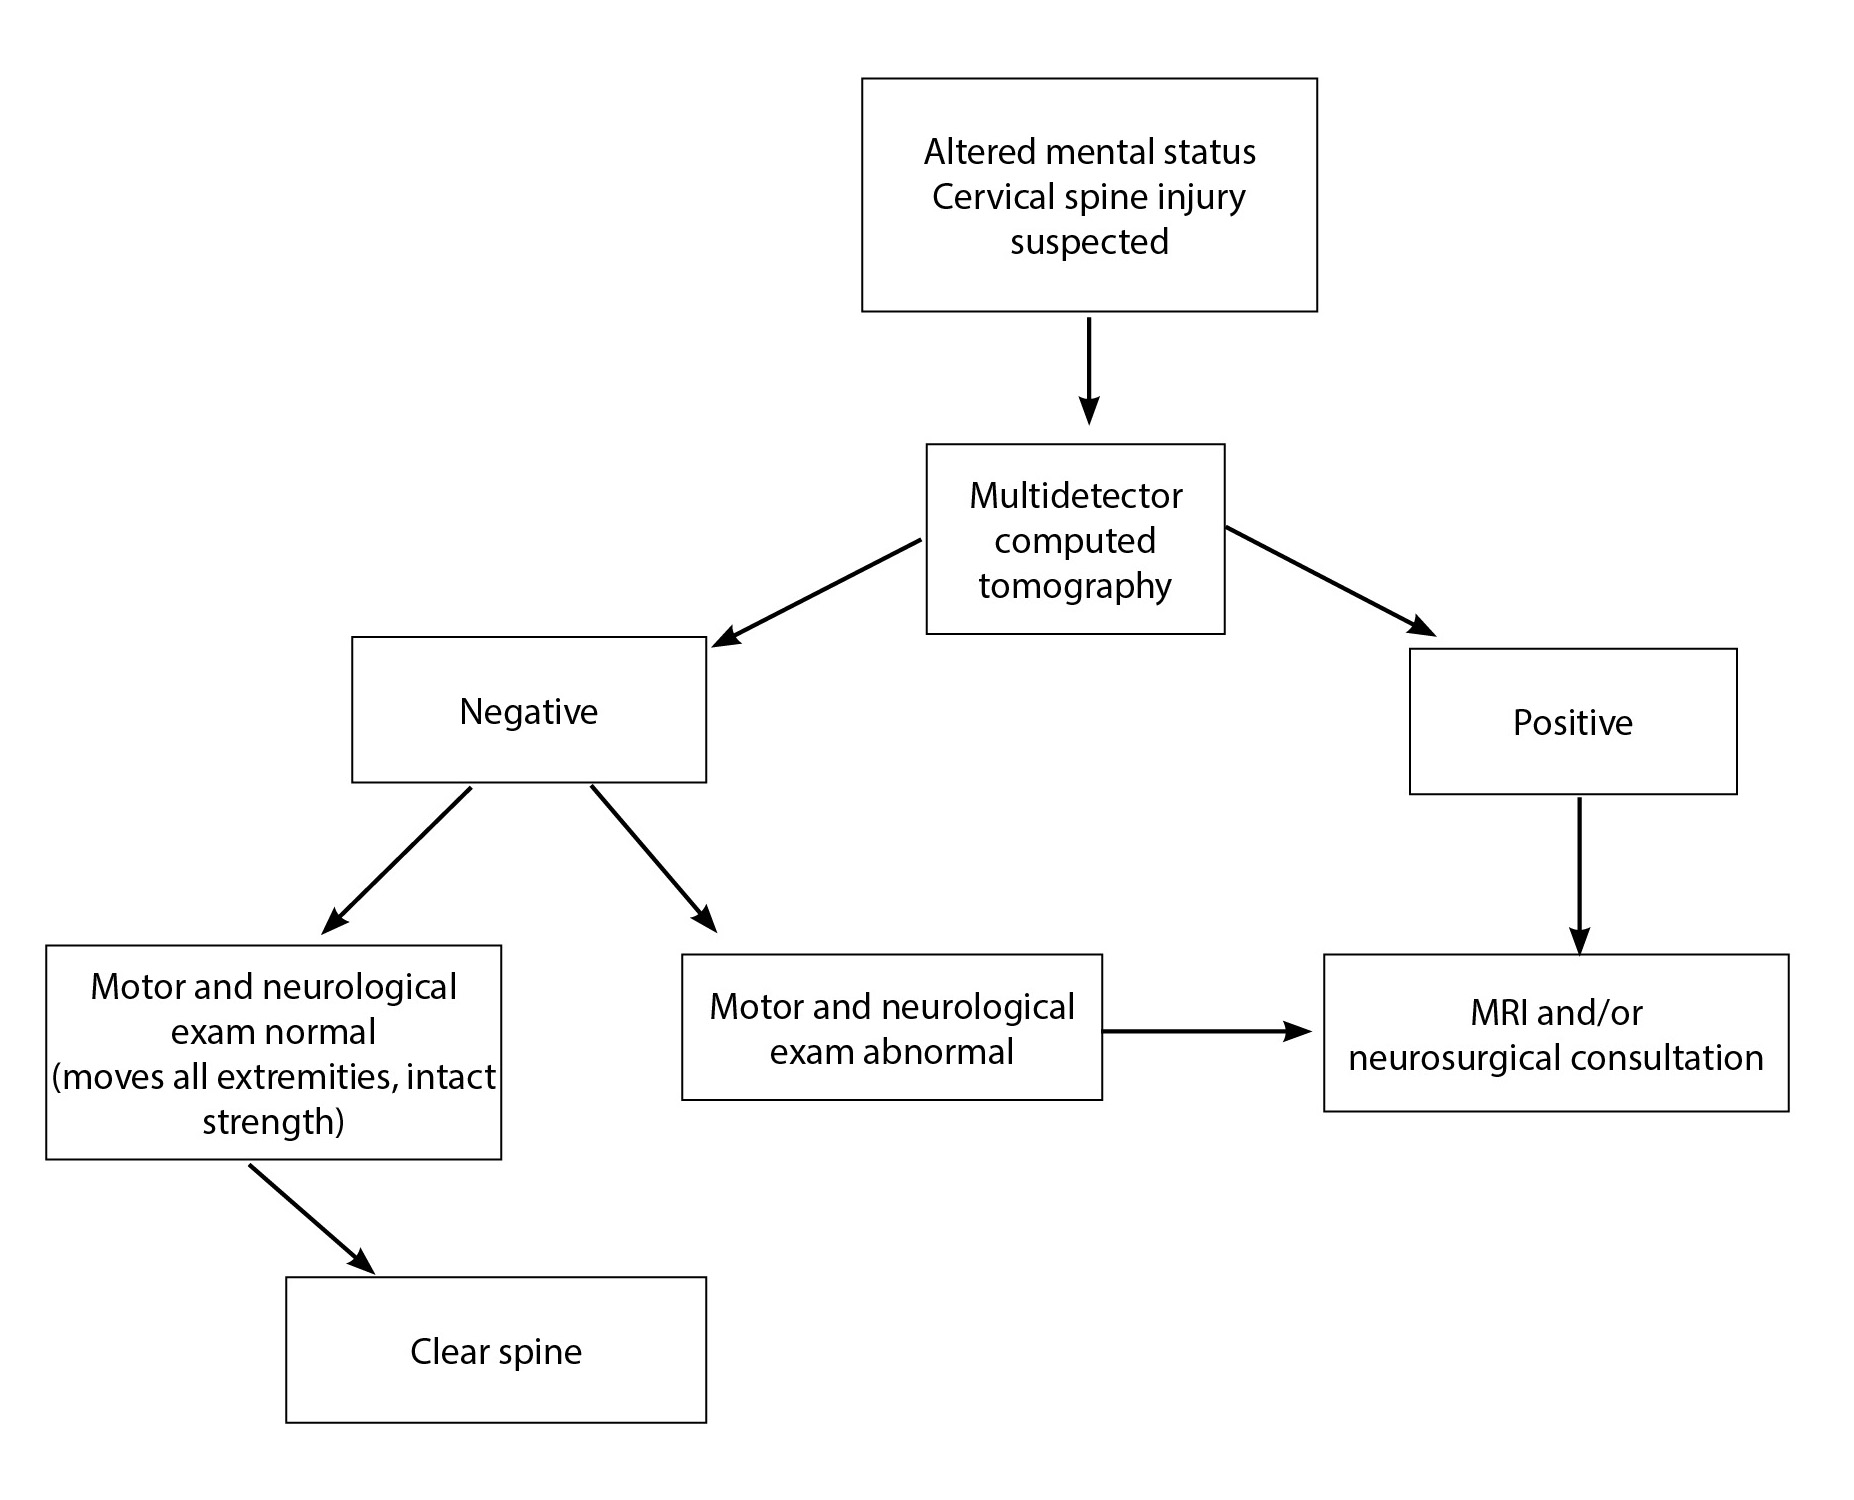 Suggested Approach to Radiological Clearance of the Cervical Spine